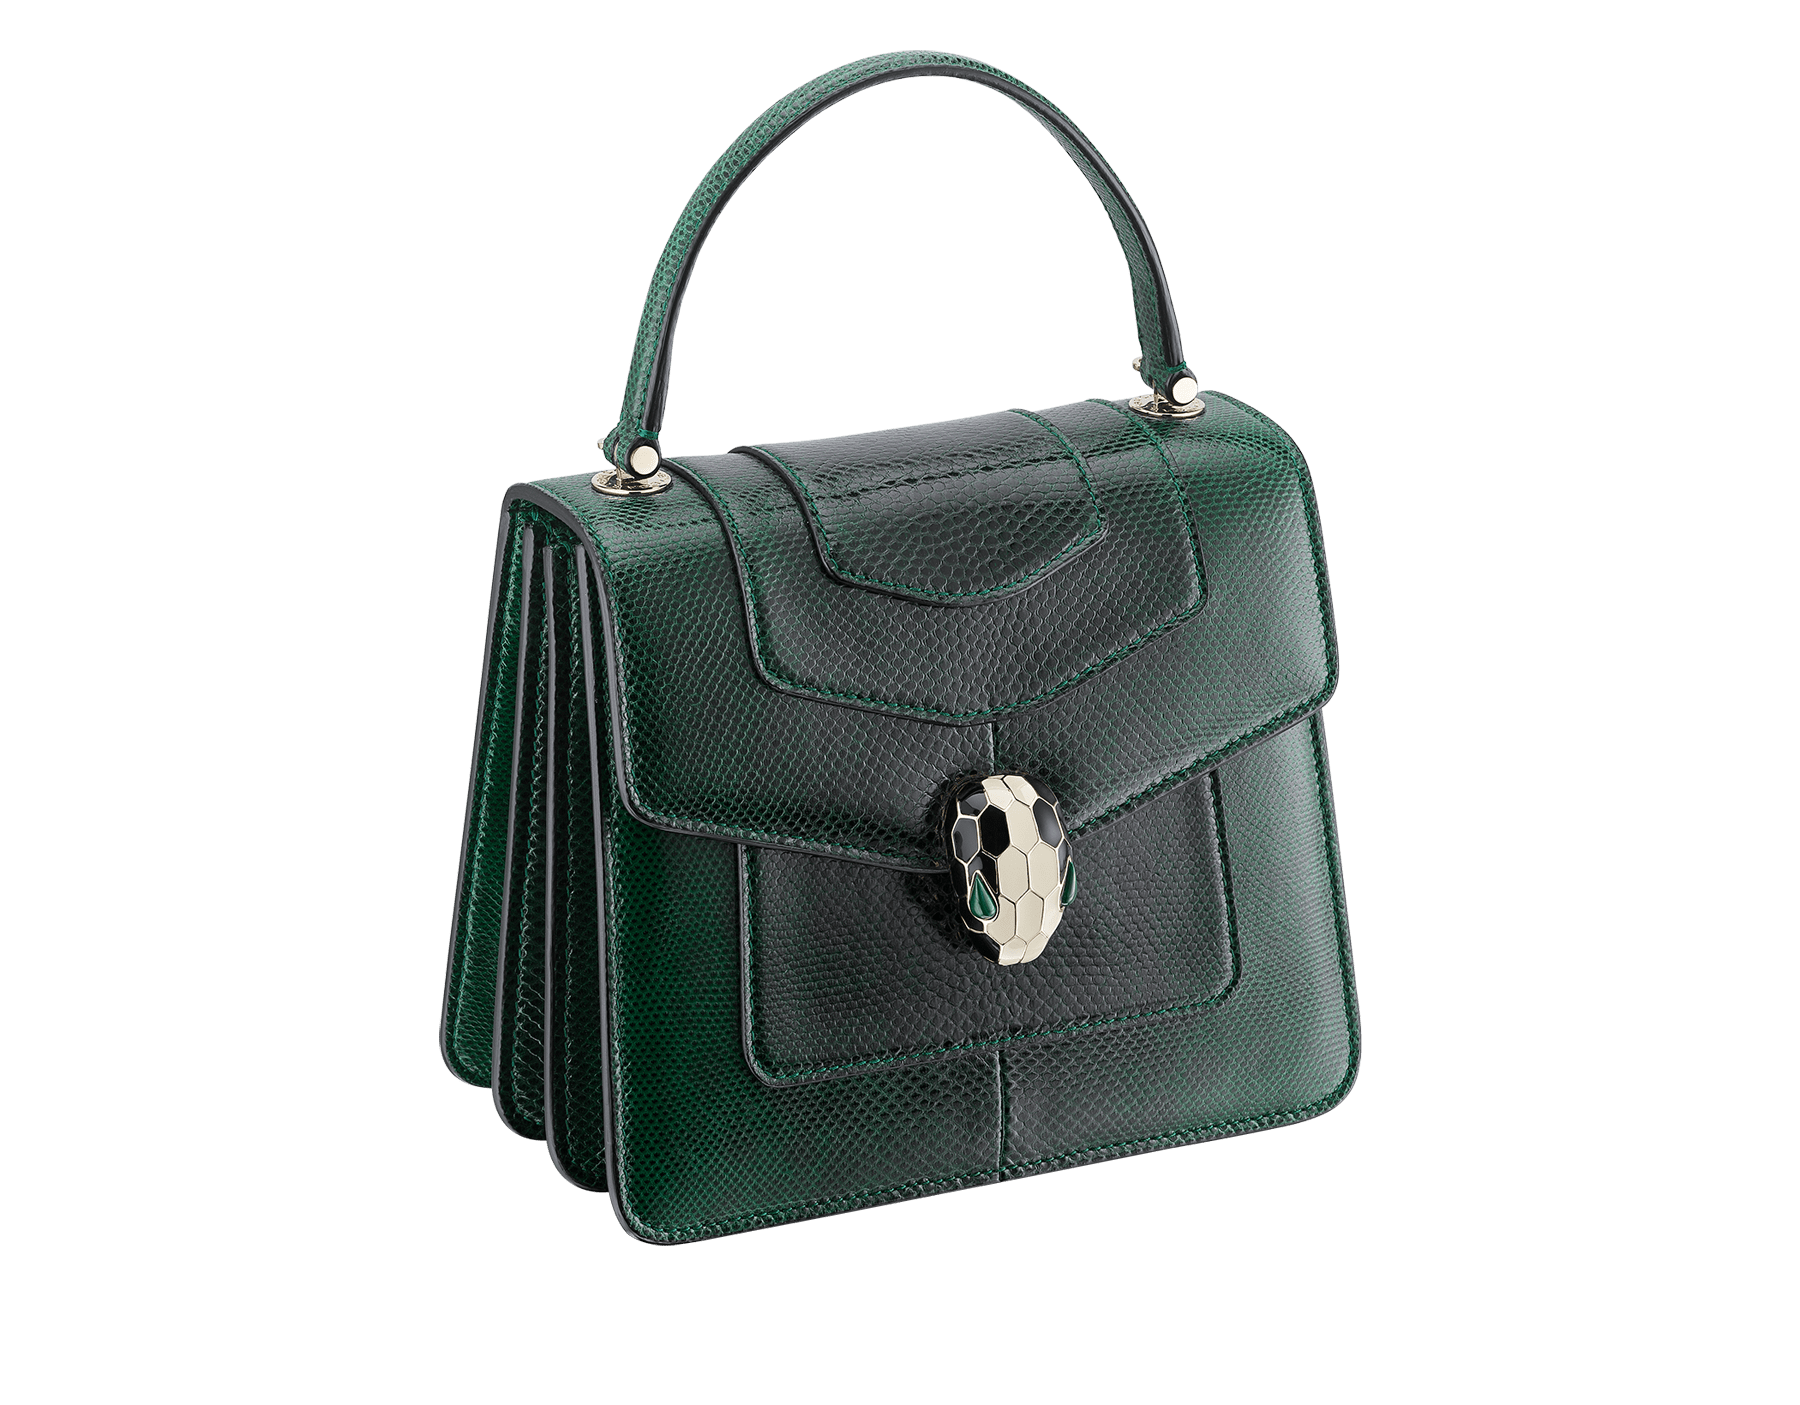 Flap cover bag Serpenti Forever in forest emerald shiny karung skin. Brass light gold plated hardware and snake head closure in black and white enamel with eyes in green malachite. 283517 image 2